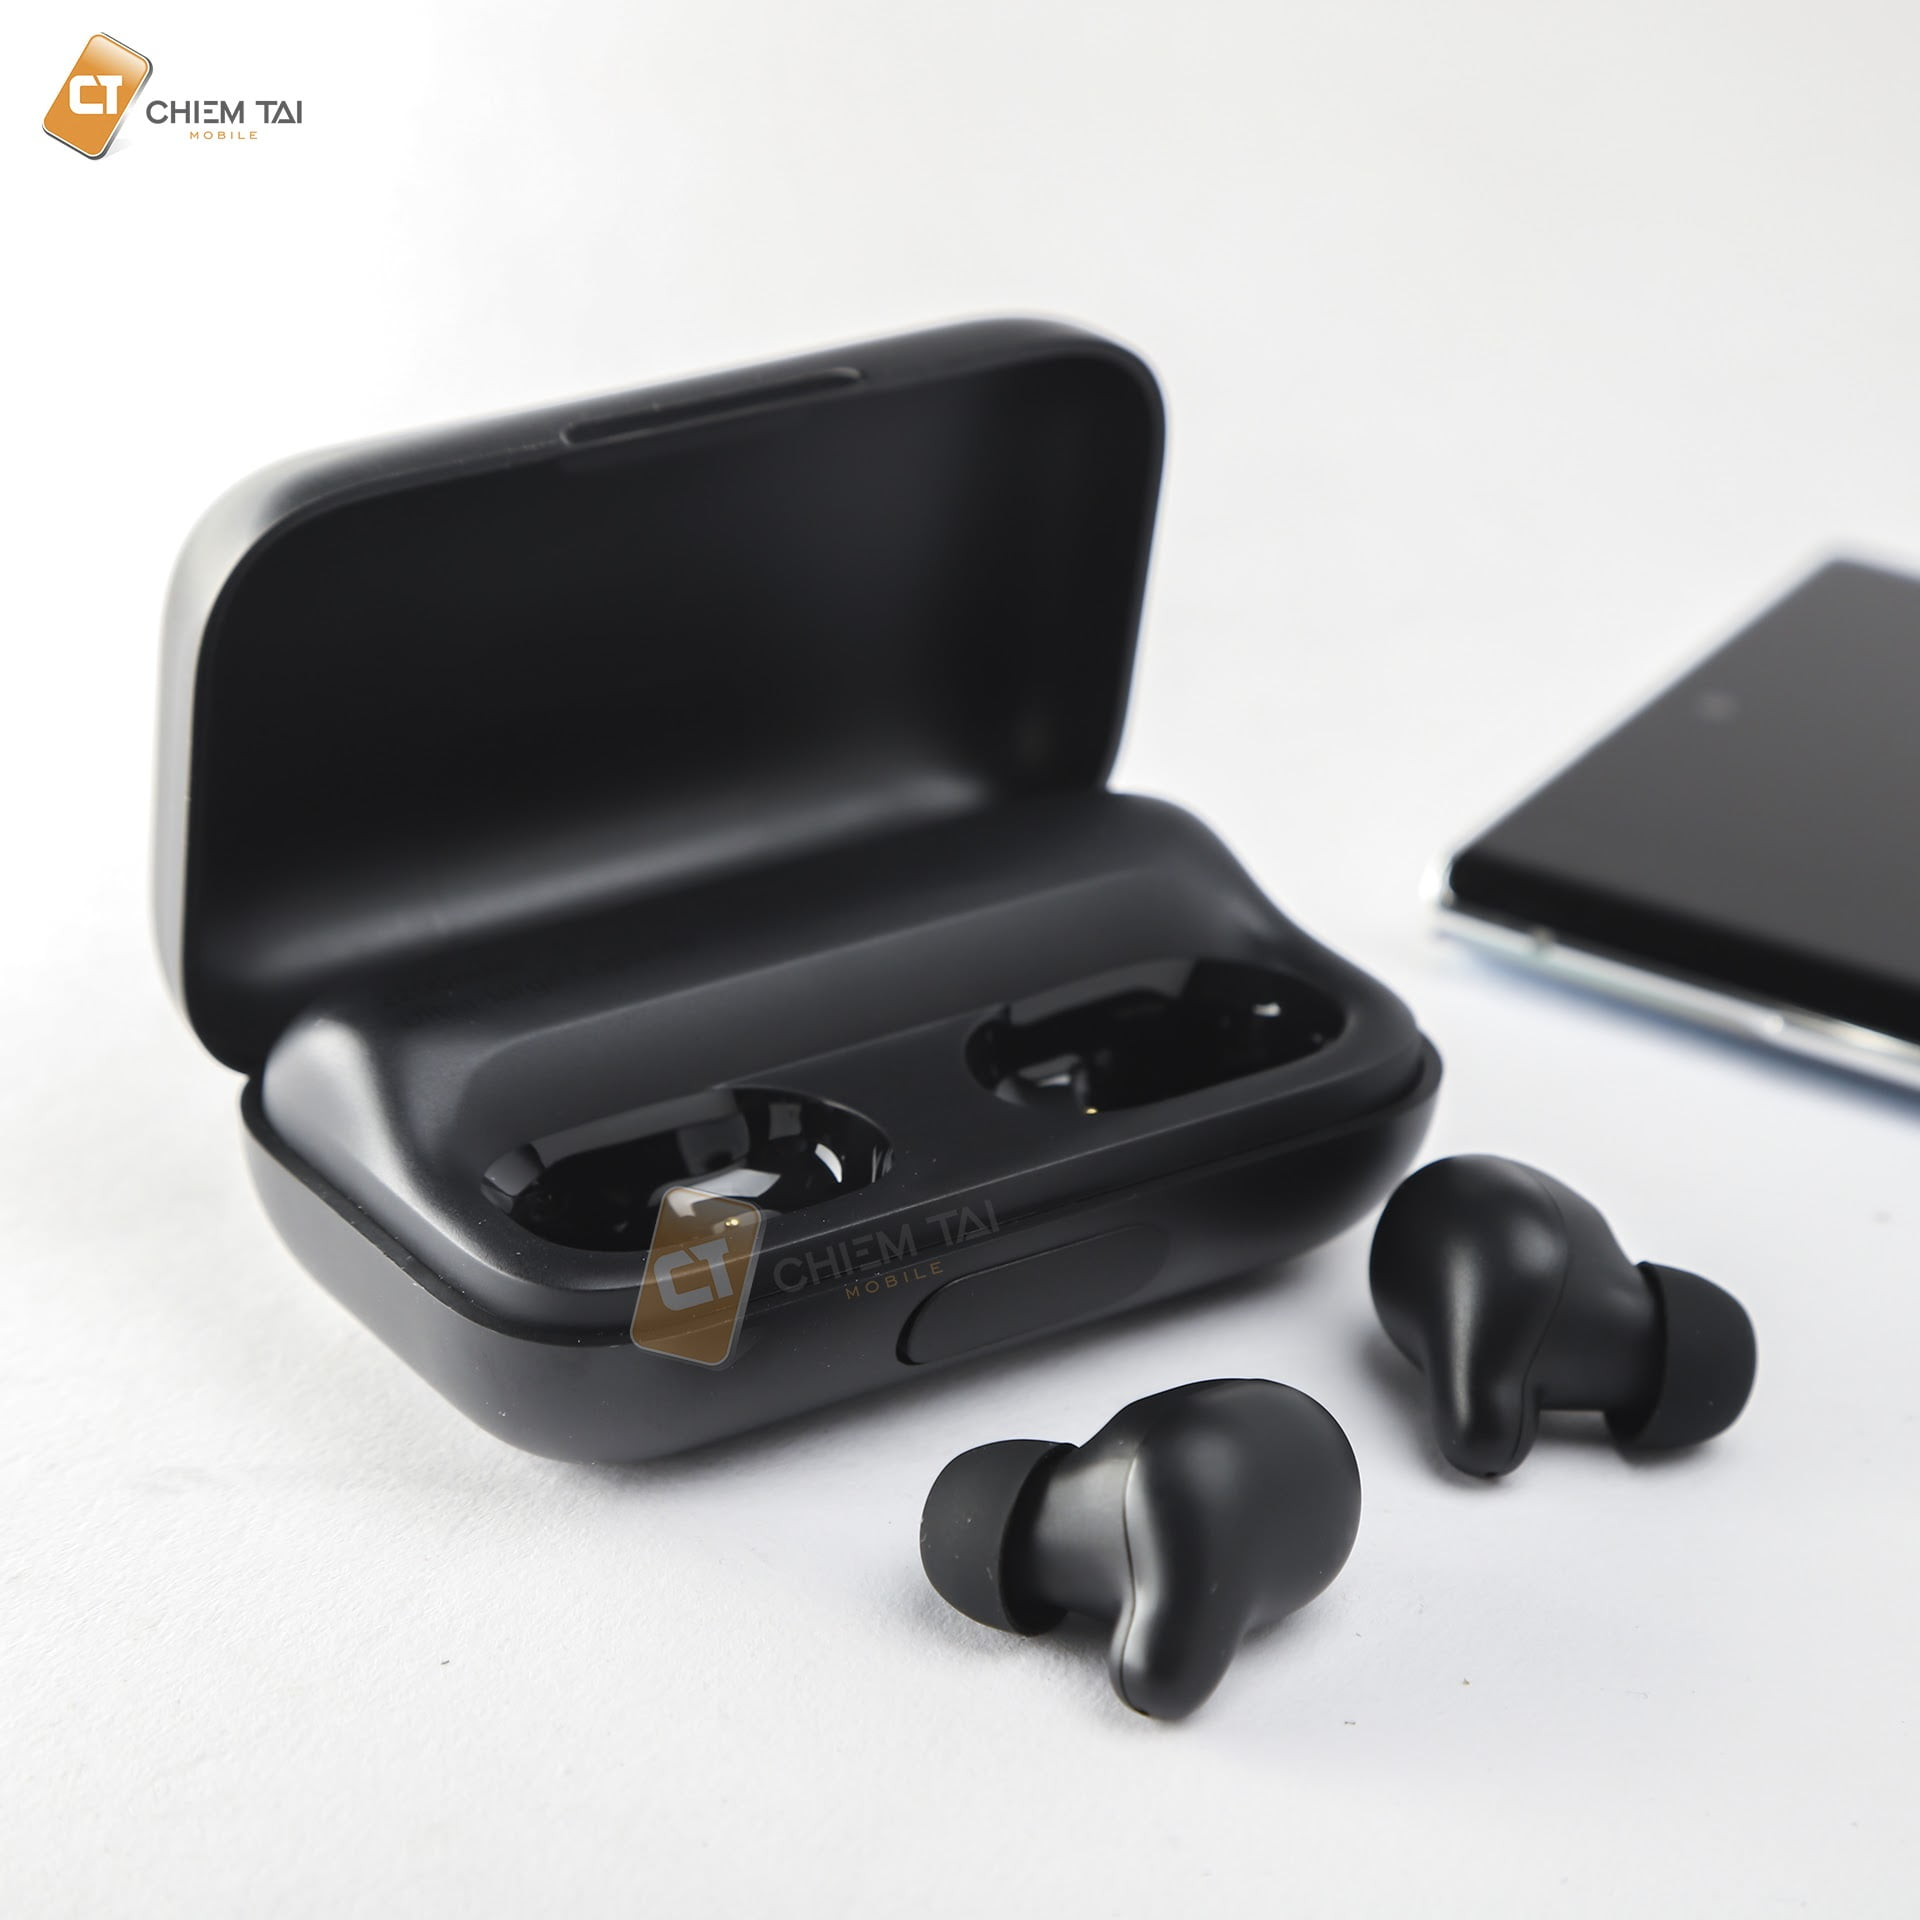 tai nghe bluetooth true wirless haylou t15 6050634e50bd1